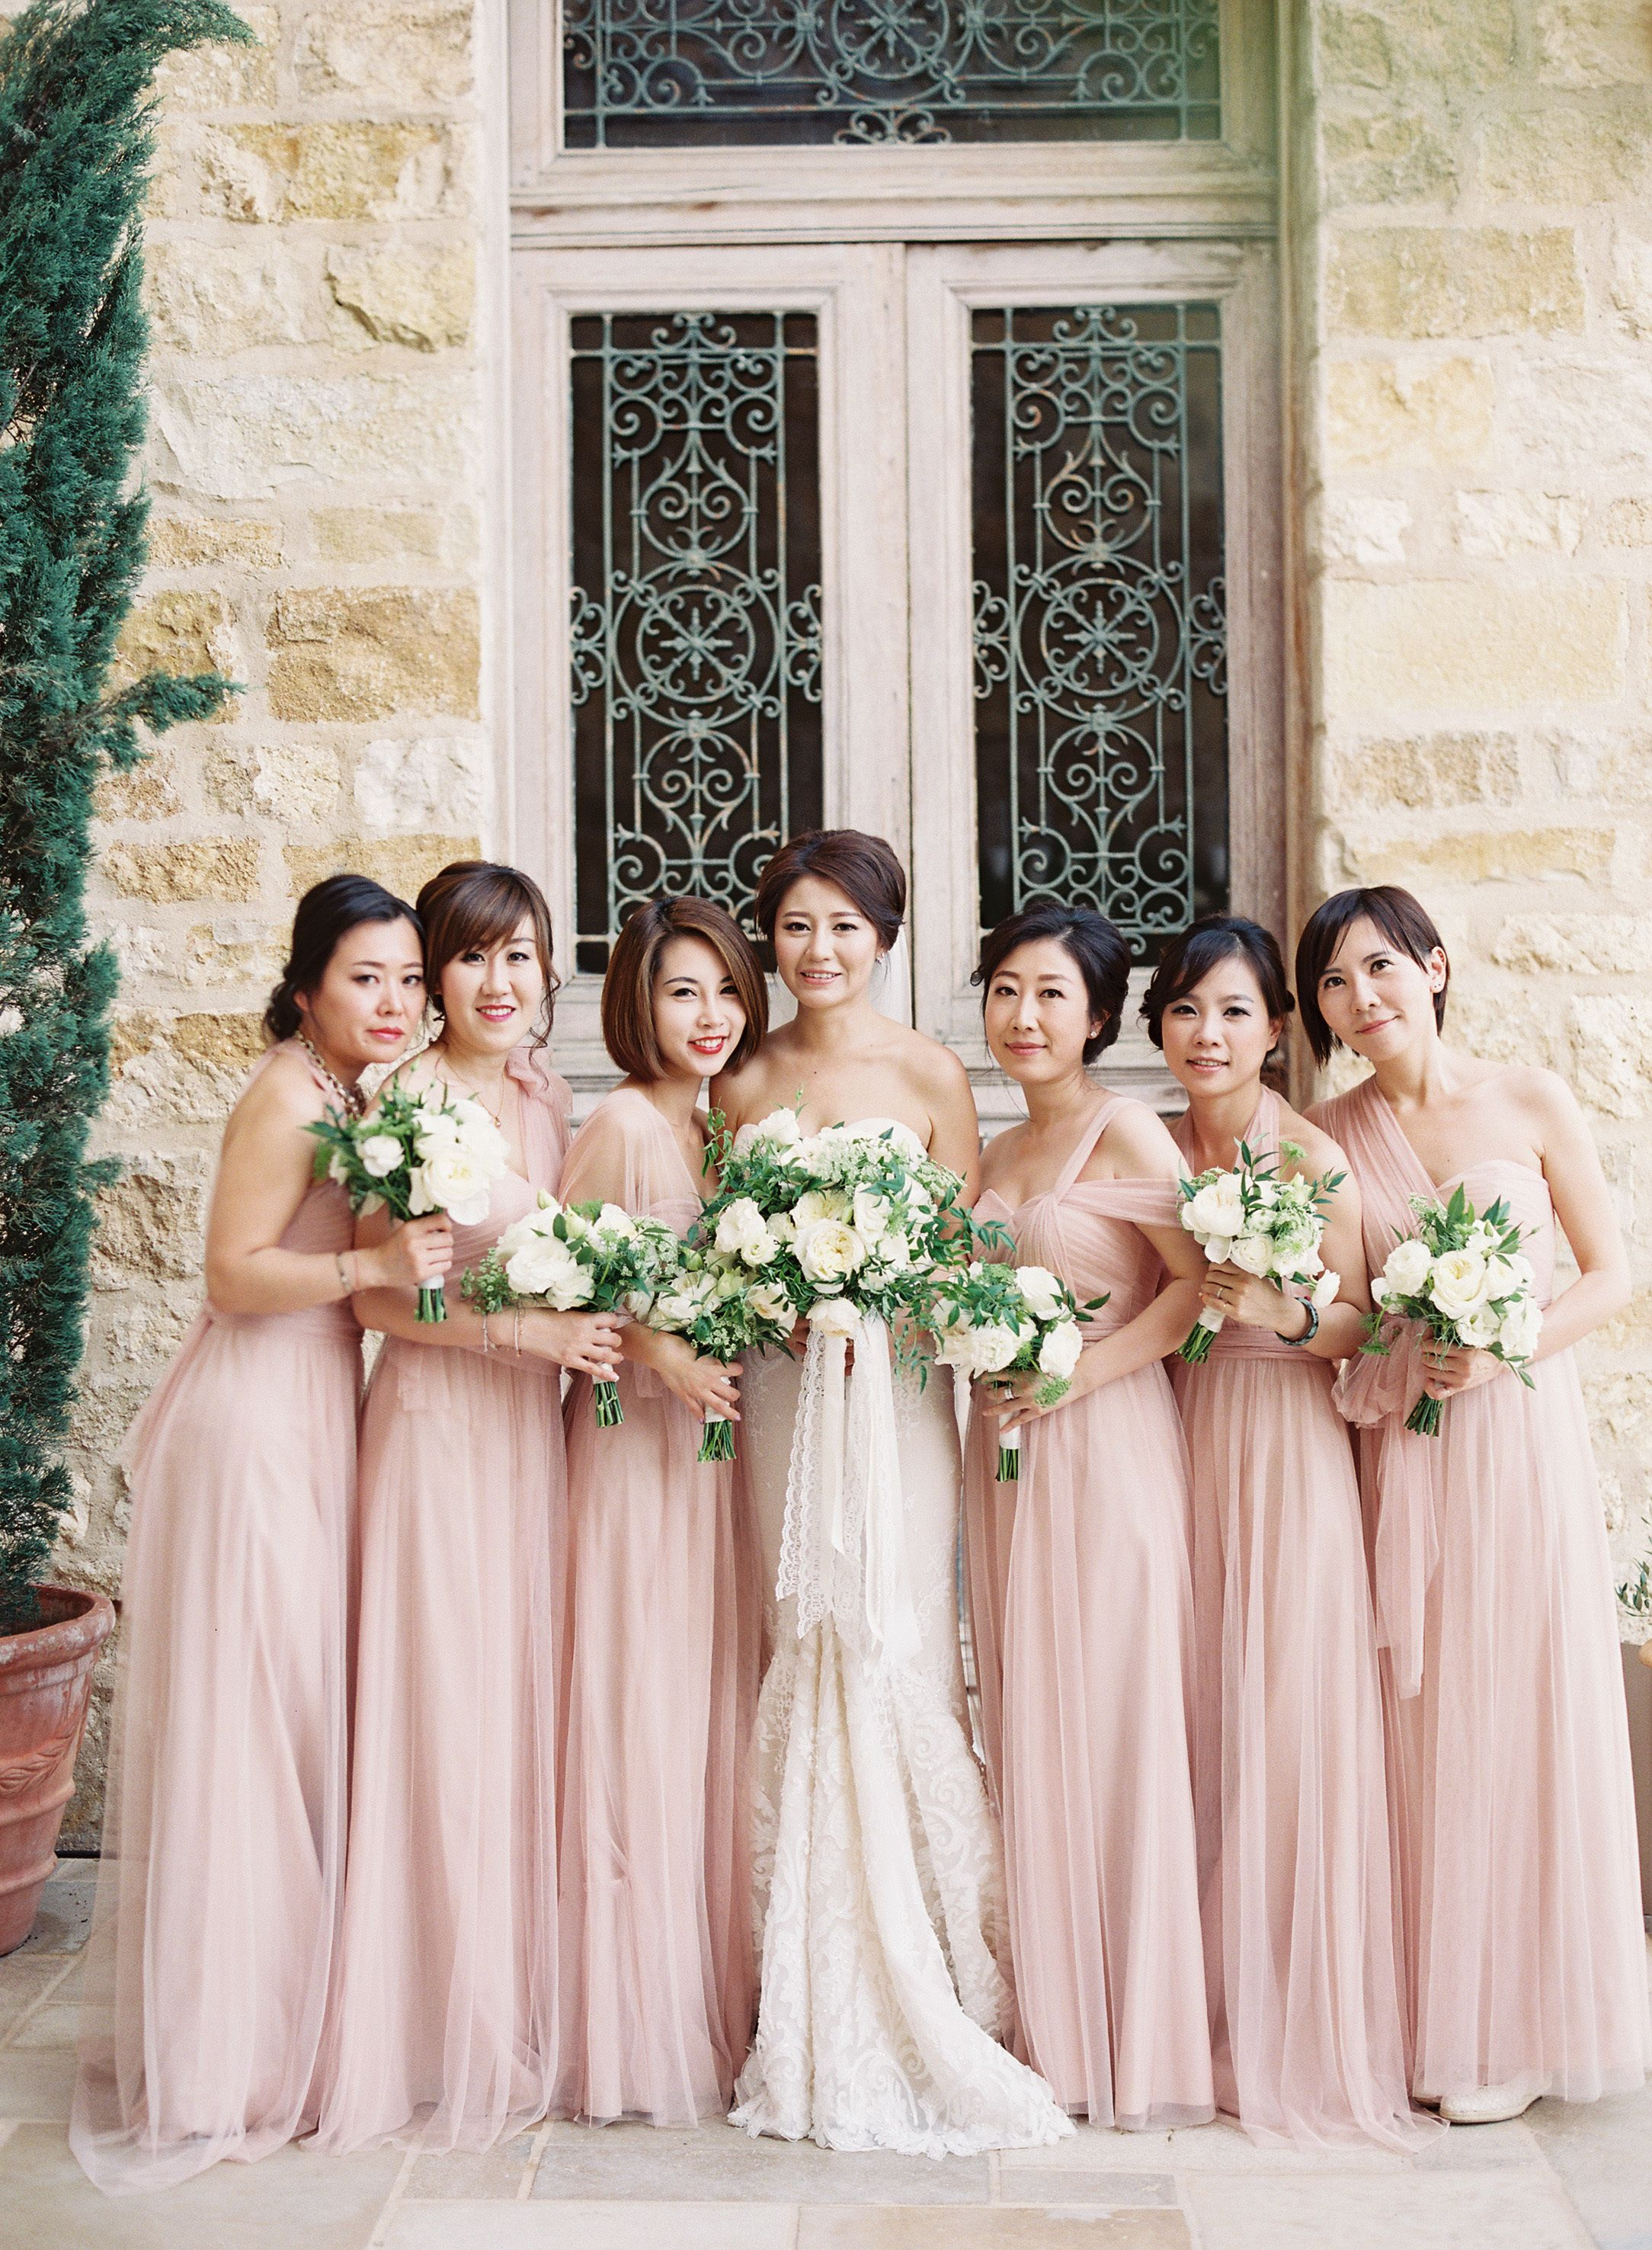 Tuscan inspired wedding accented with organic greenery wedding tuscan inspired wedding accented with organic greenery vanessa hudgens and ashley tisdale ombrellifo Image collections